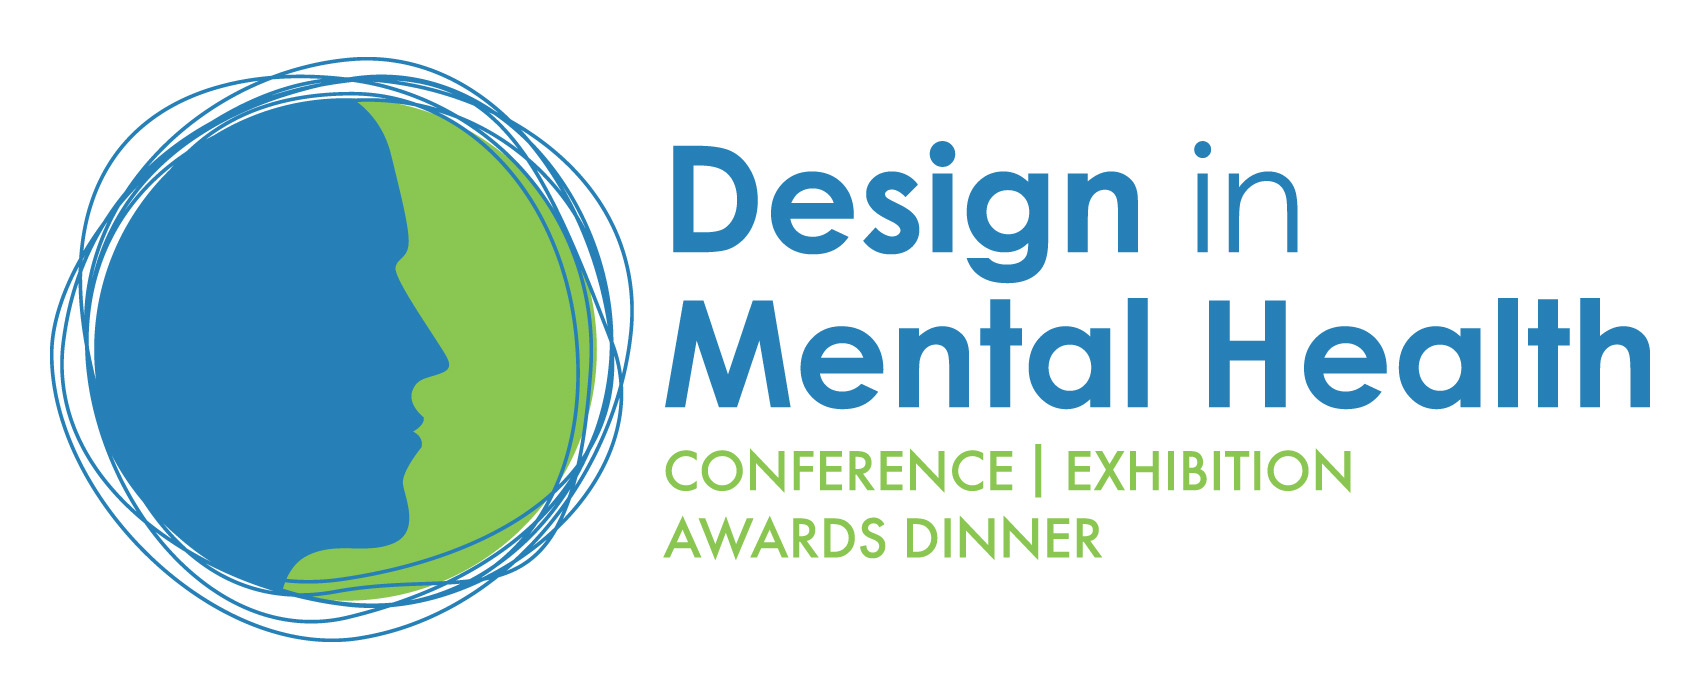 Oxehealth Shortlisted for Product Innovation of the Year by the Design in Mental Health Awards